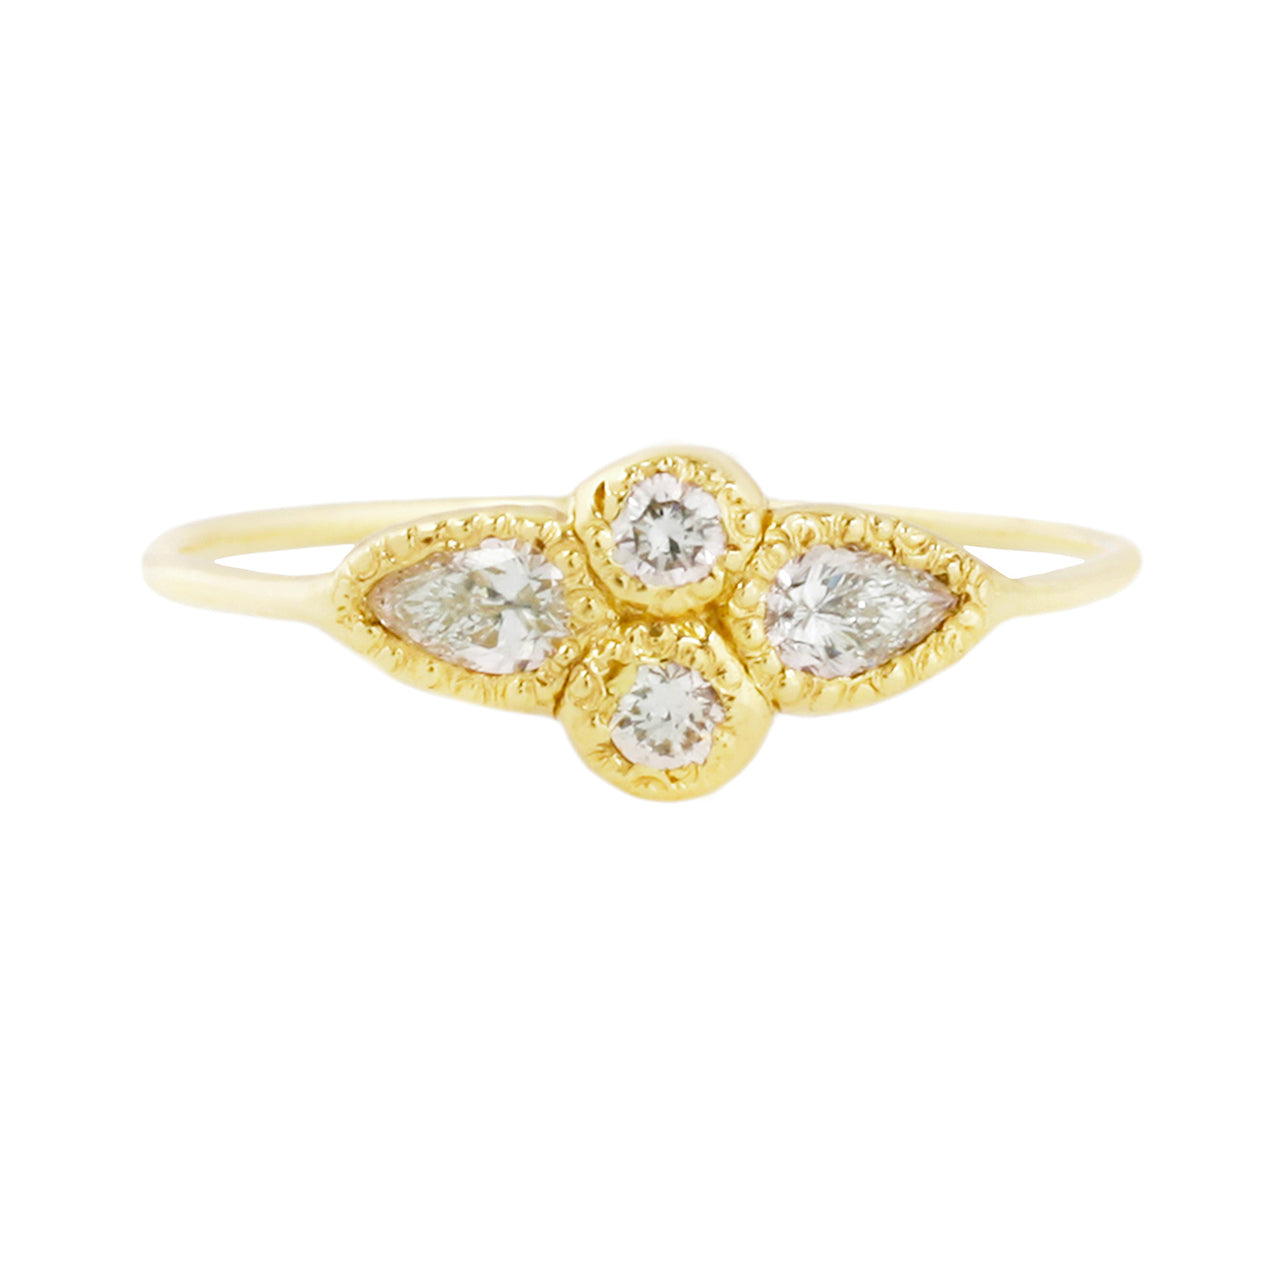 Mariposa ring white diamonds